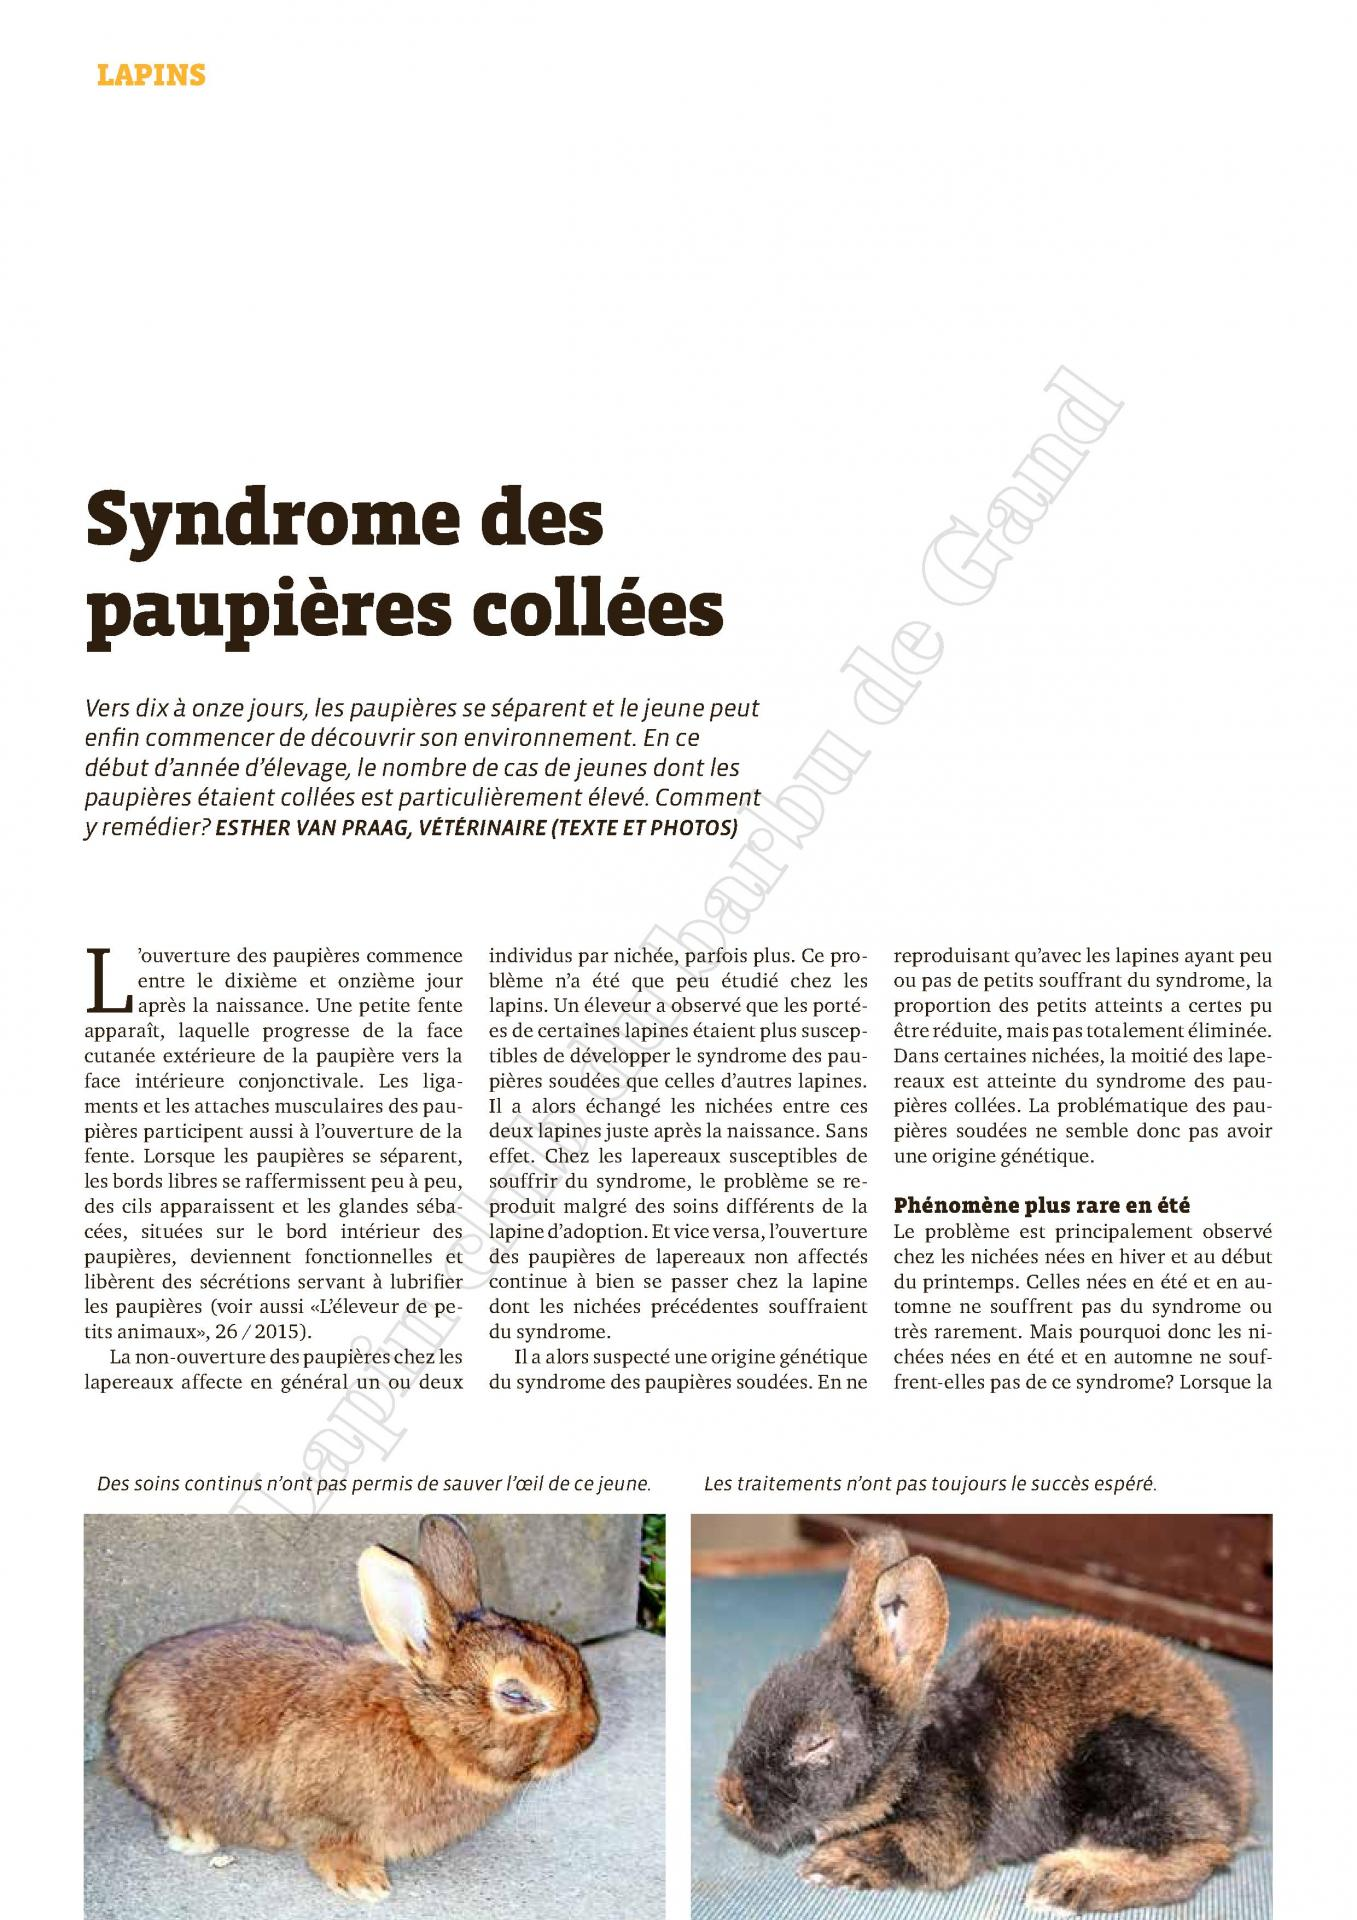 Syndrome des paupieres collees 1